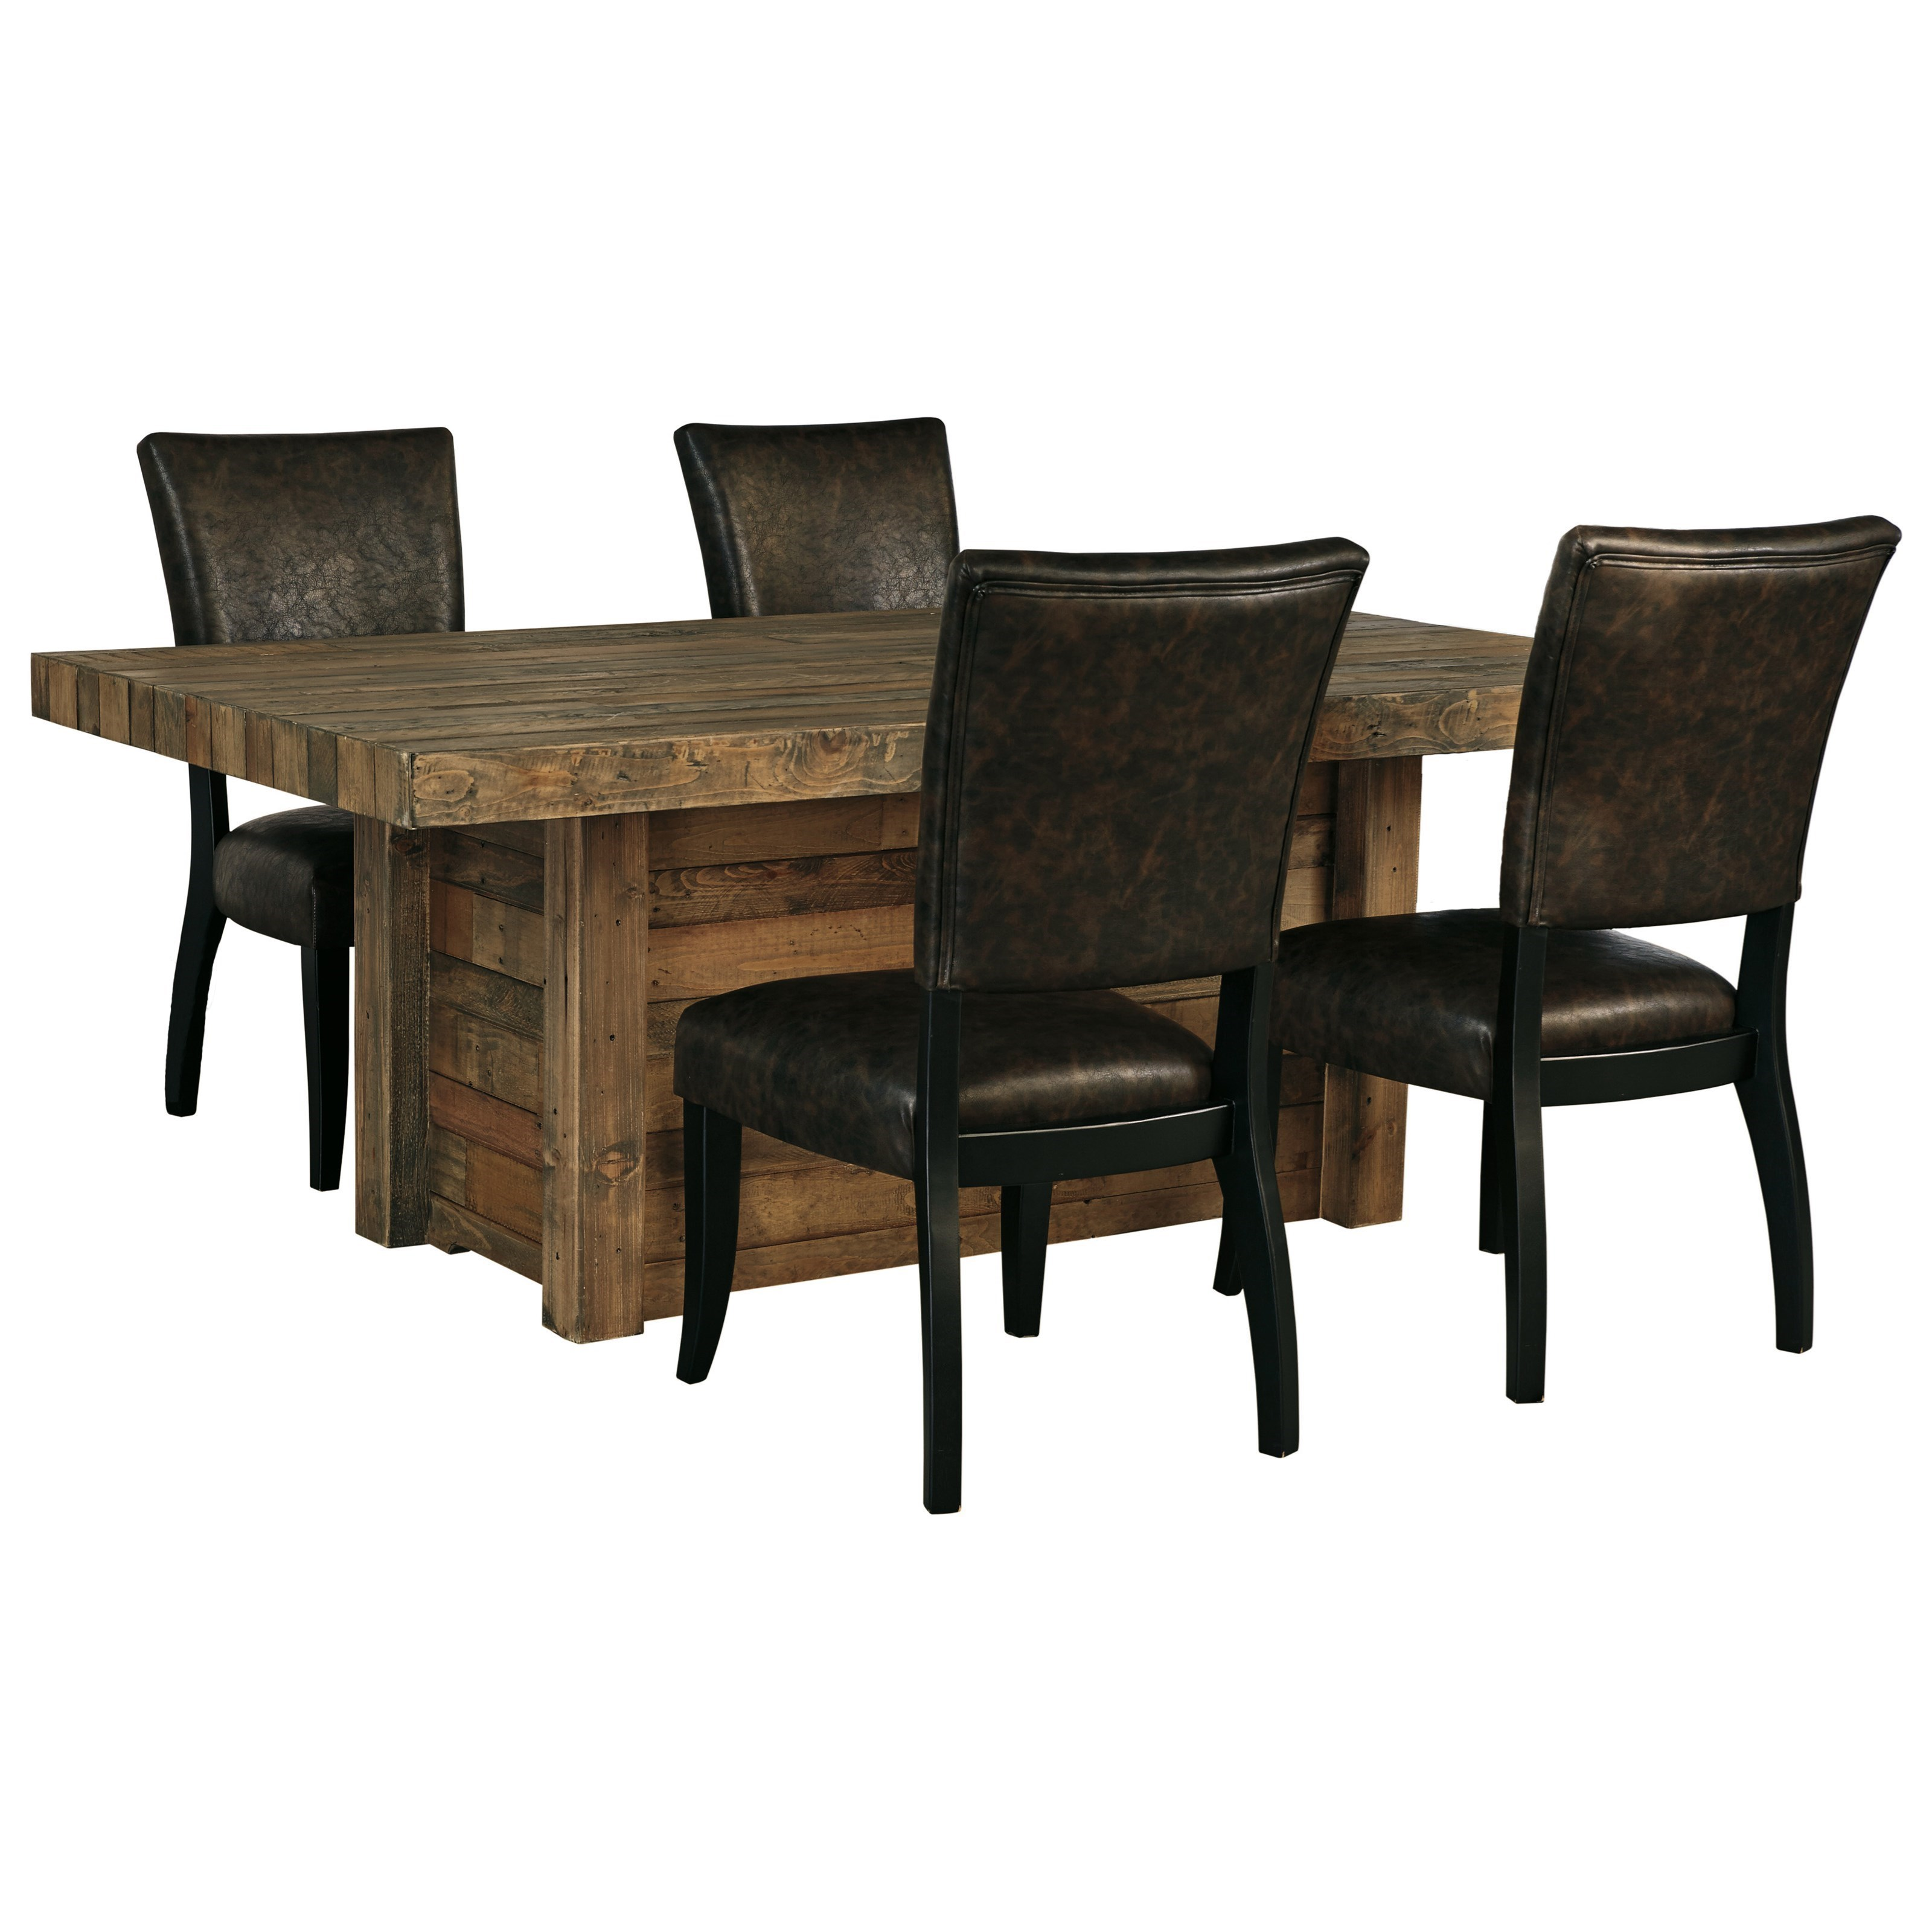 Signature Design by Ashley Sommerford 5-Piece Rectangular Dining Room Table Set - Godby Home ...